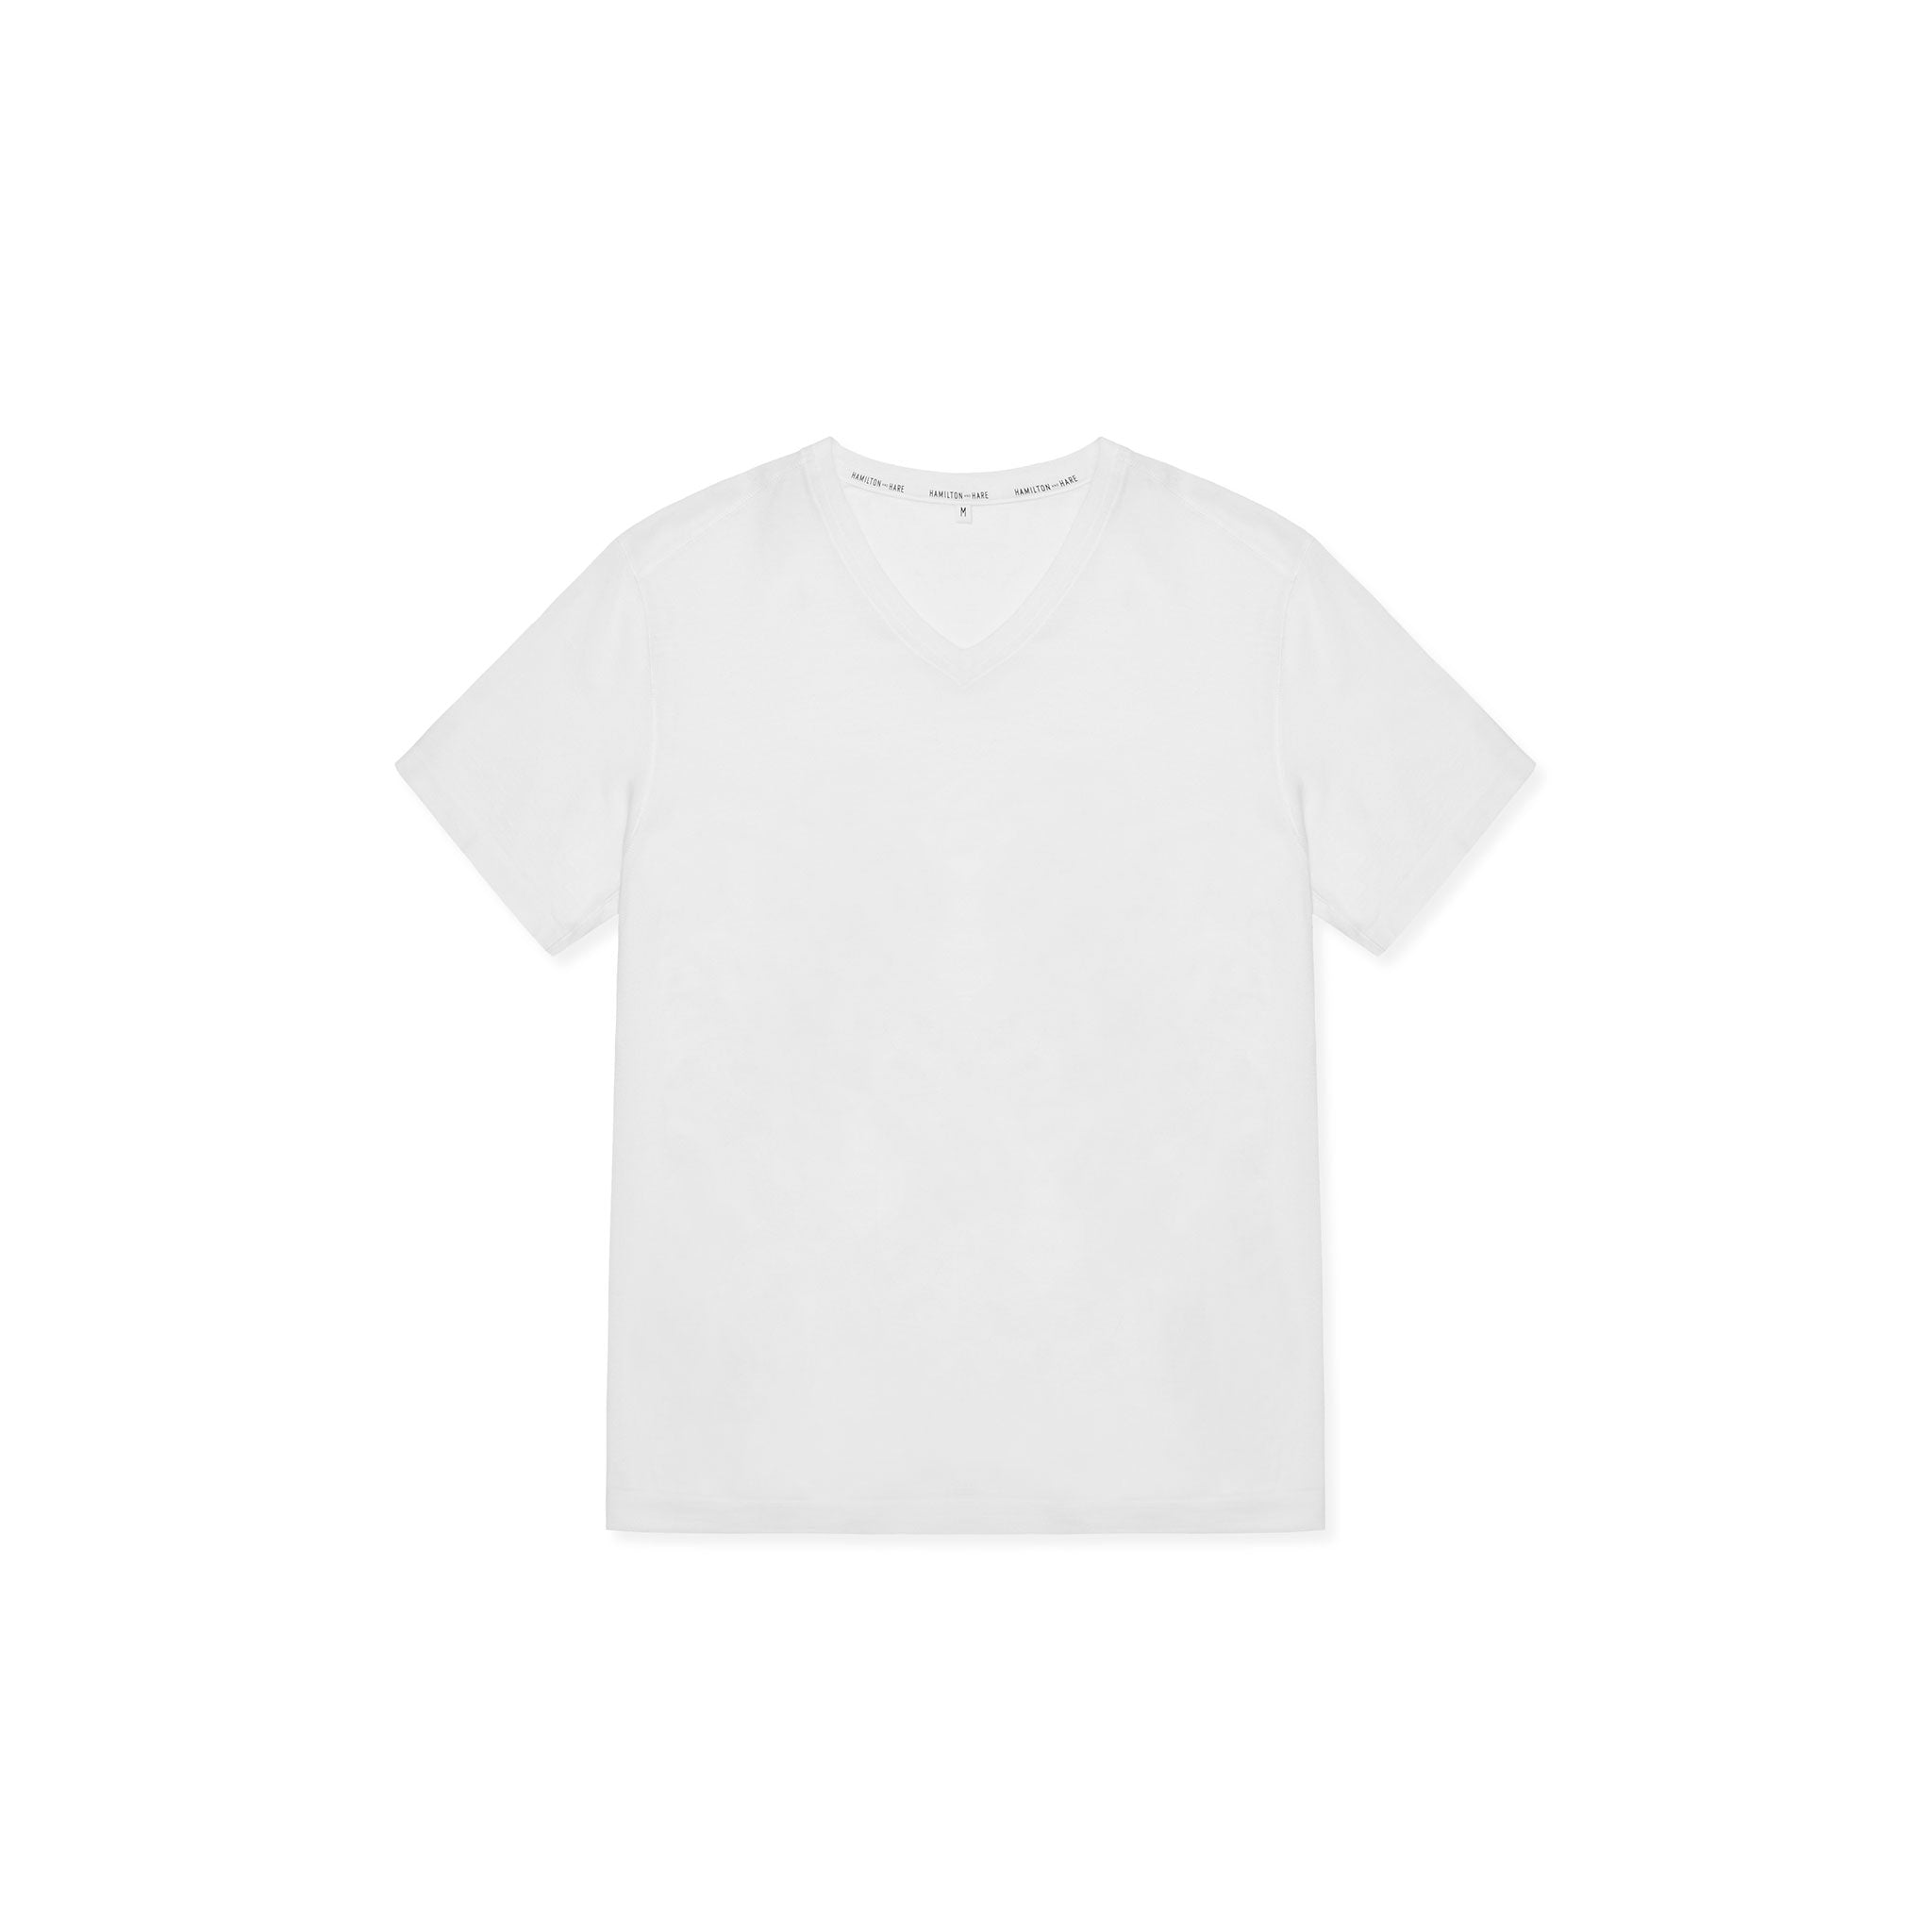 Hamilton and Hare Tubular V-Neck Tee White